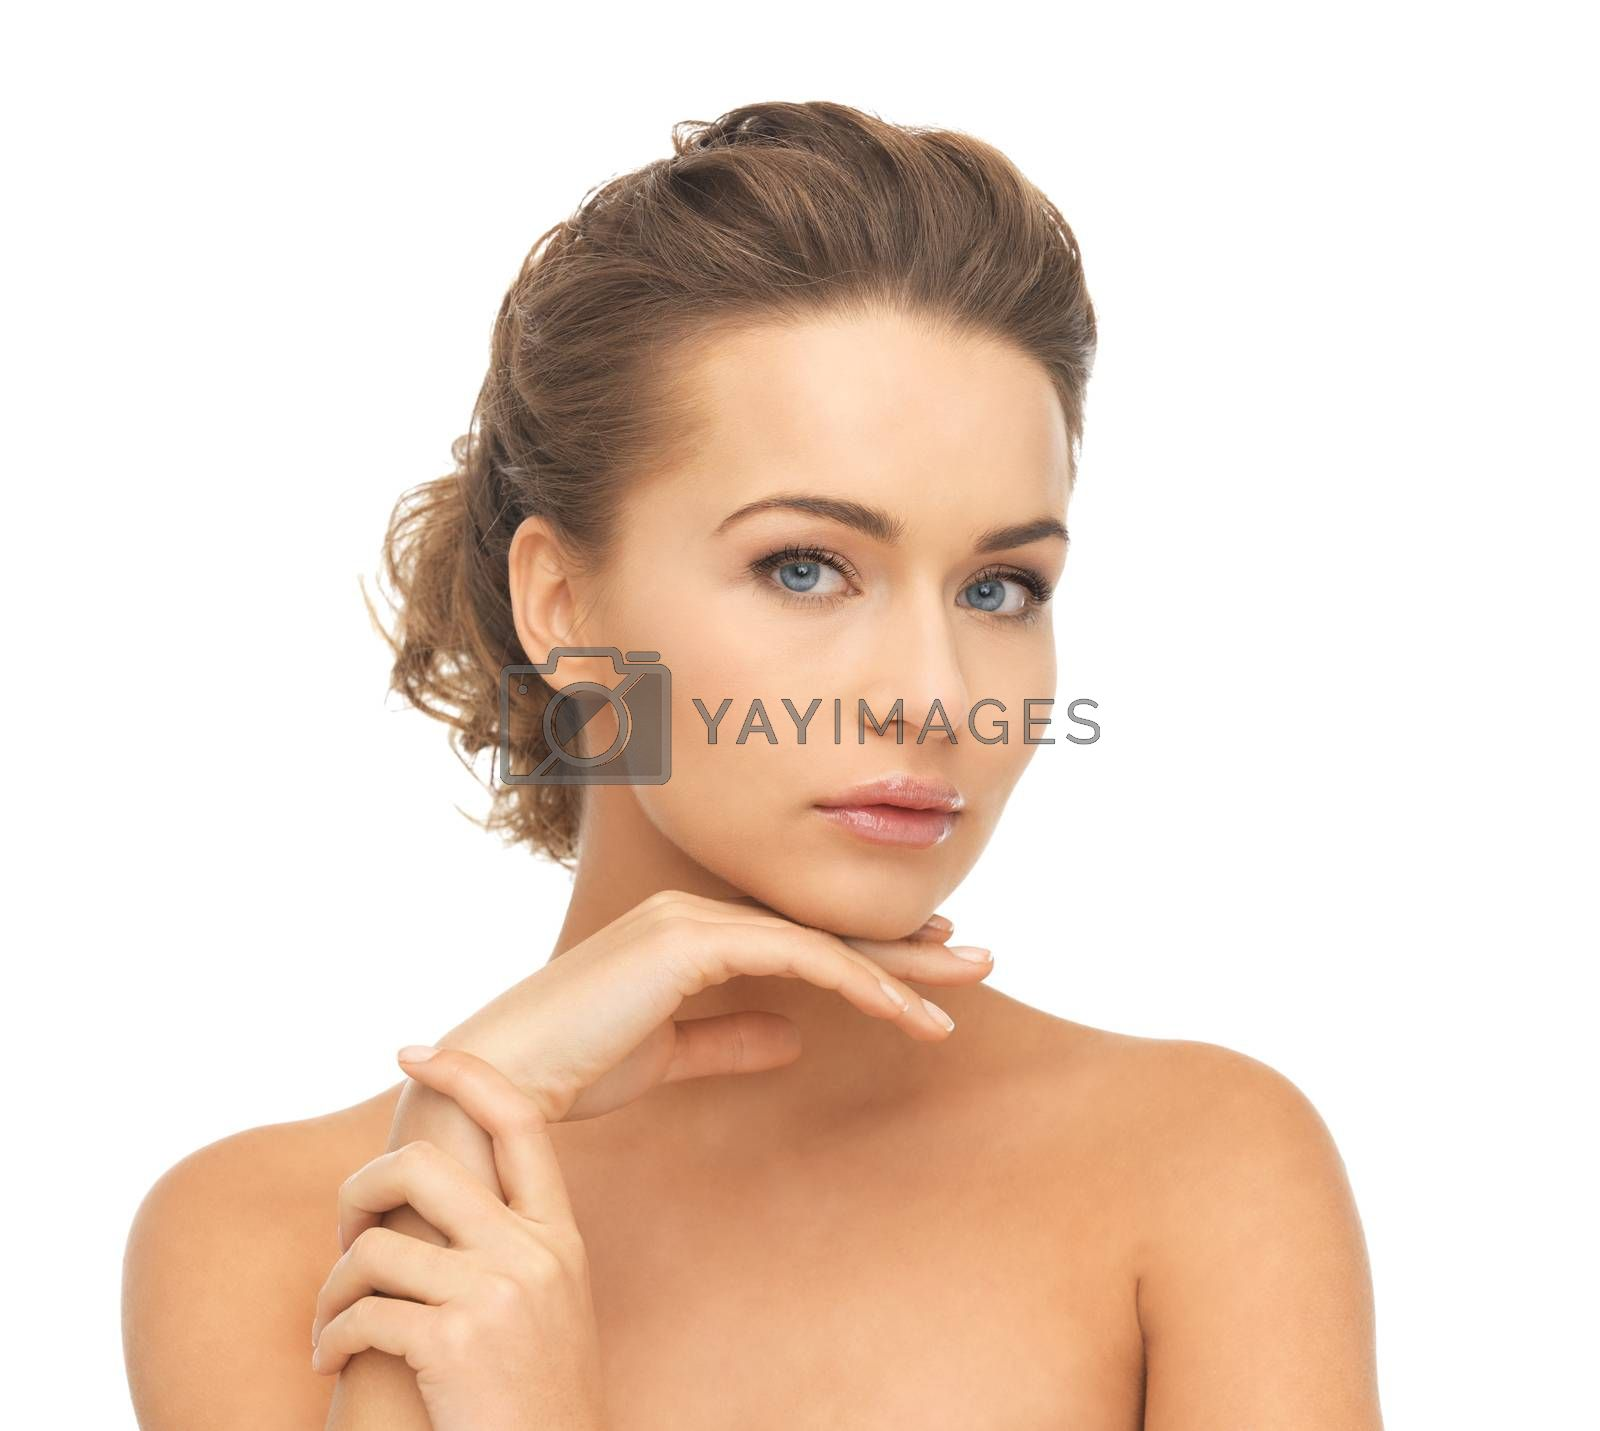 face and hands of beautiful woman by dolgachov